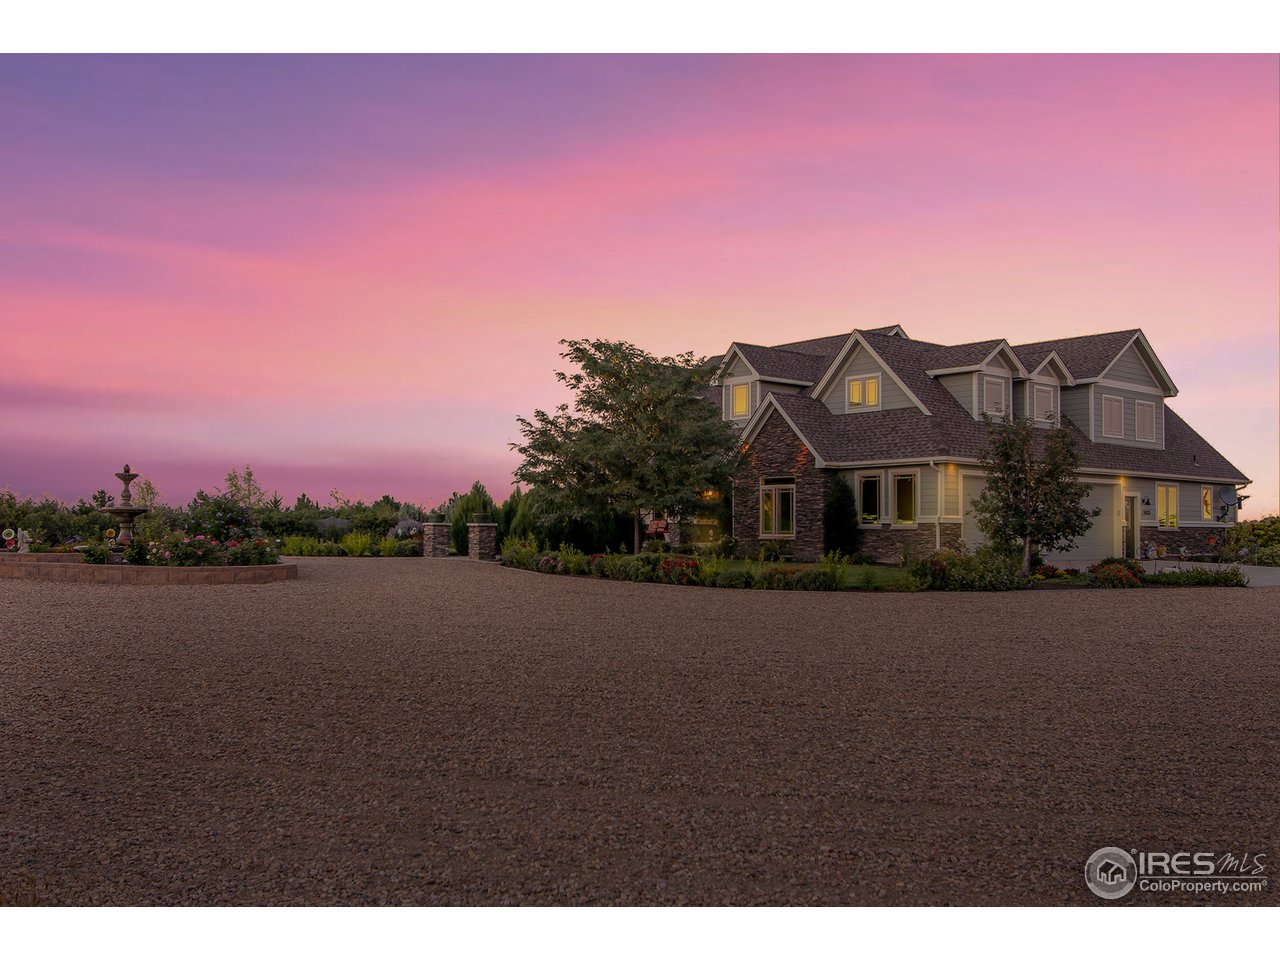 Immaculate Custom 5.14 acre Estate w/ stunning mountain views includes: hardwood floors, gourmet kitchen w/ granite counters, walk-in pantry, vaulted ceilings, and open floor plan. Gorgeous 5-piece bath in master retreat with separate his/her closets! This home boasts space & privacy backing to farmland, attached 3 car garage with separate 35x45 workshop/garage, professional landscaping w/ water feature, & garden oasis. Enjoy this private paradise from the 4 seasons room & custom patio!